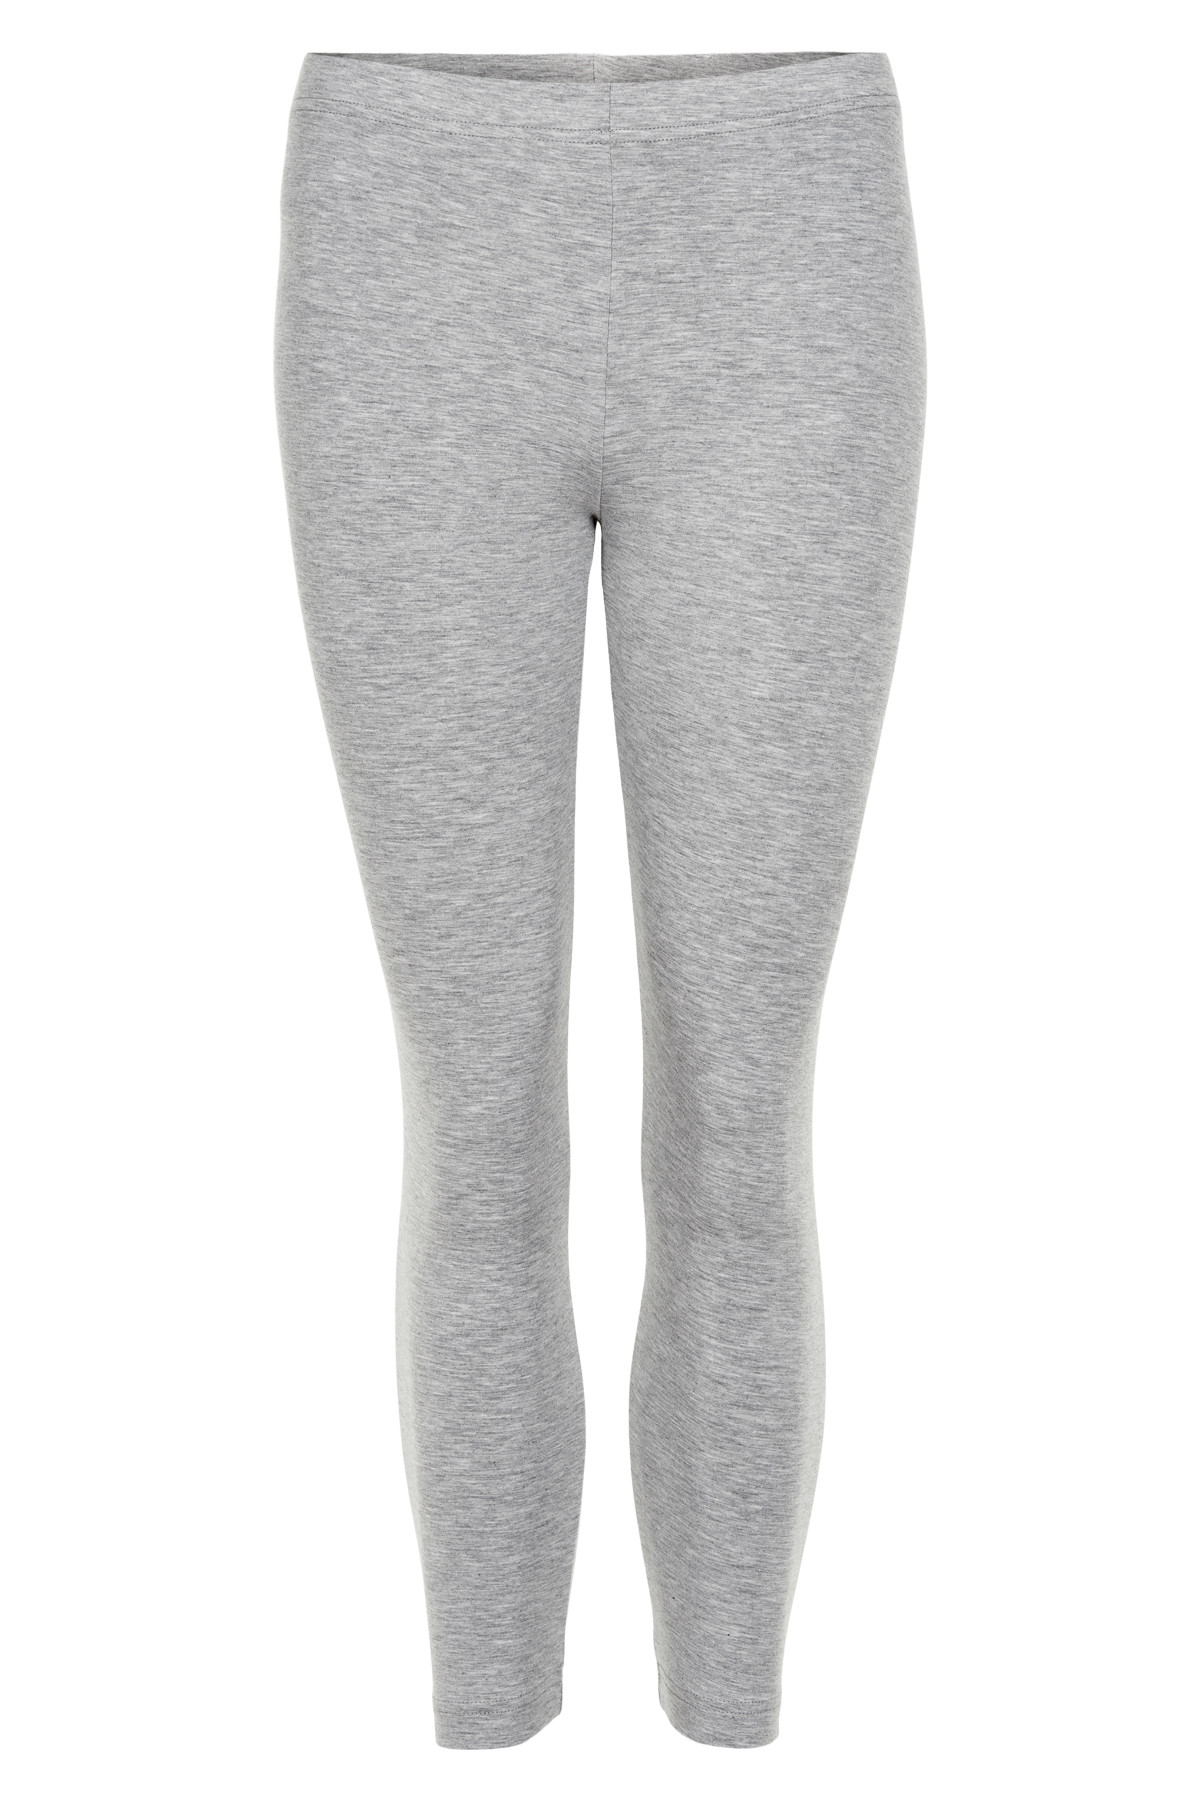 NOA NOA LEGGINGS 1-9383-1 00005 (Grey, XL)